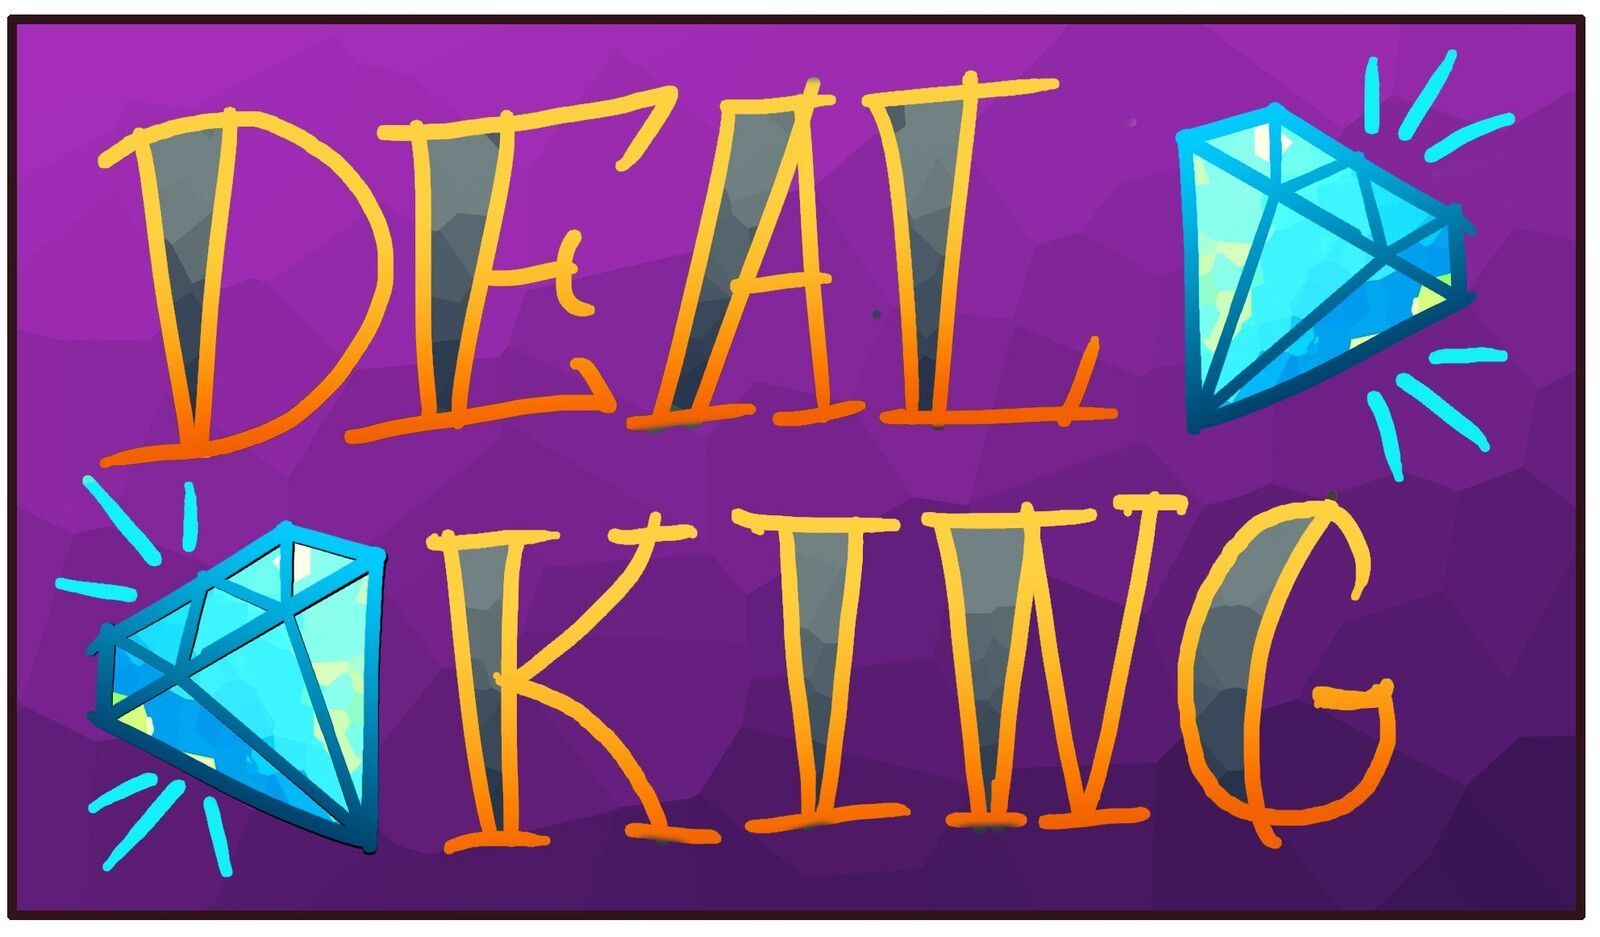 DEAL KING